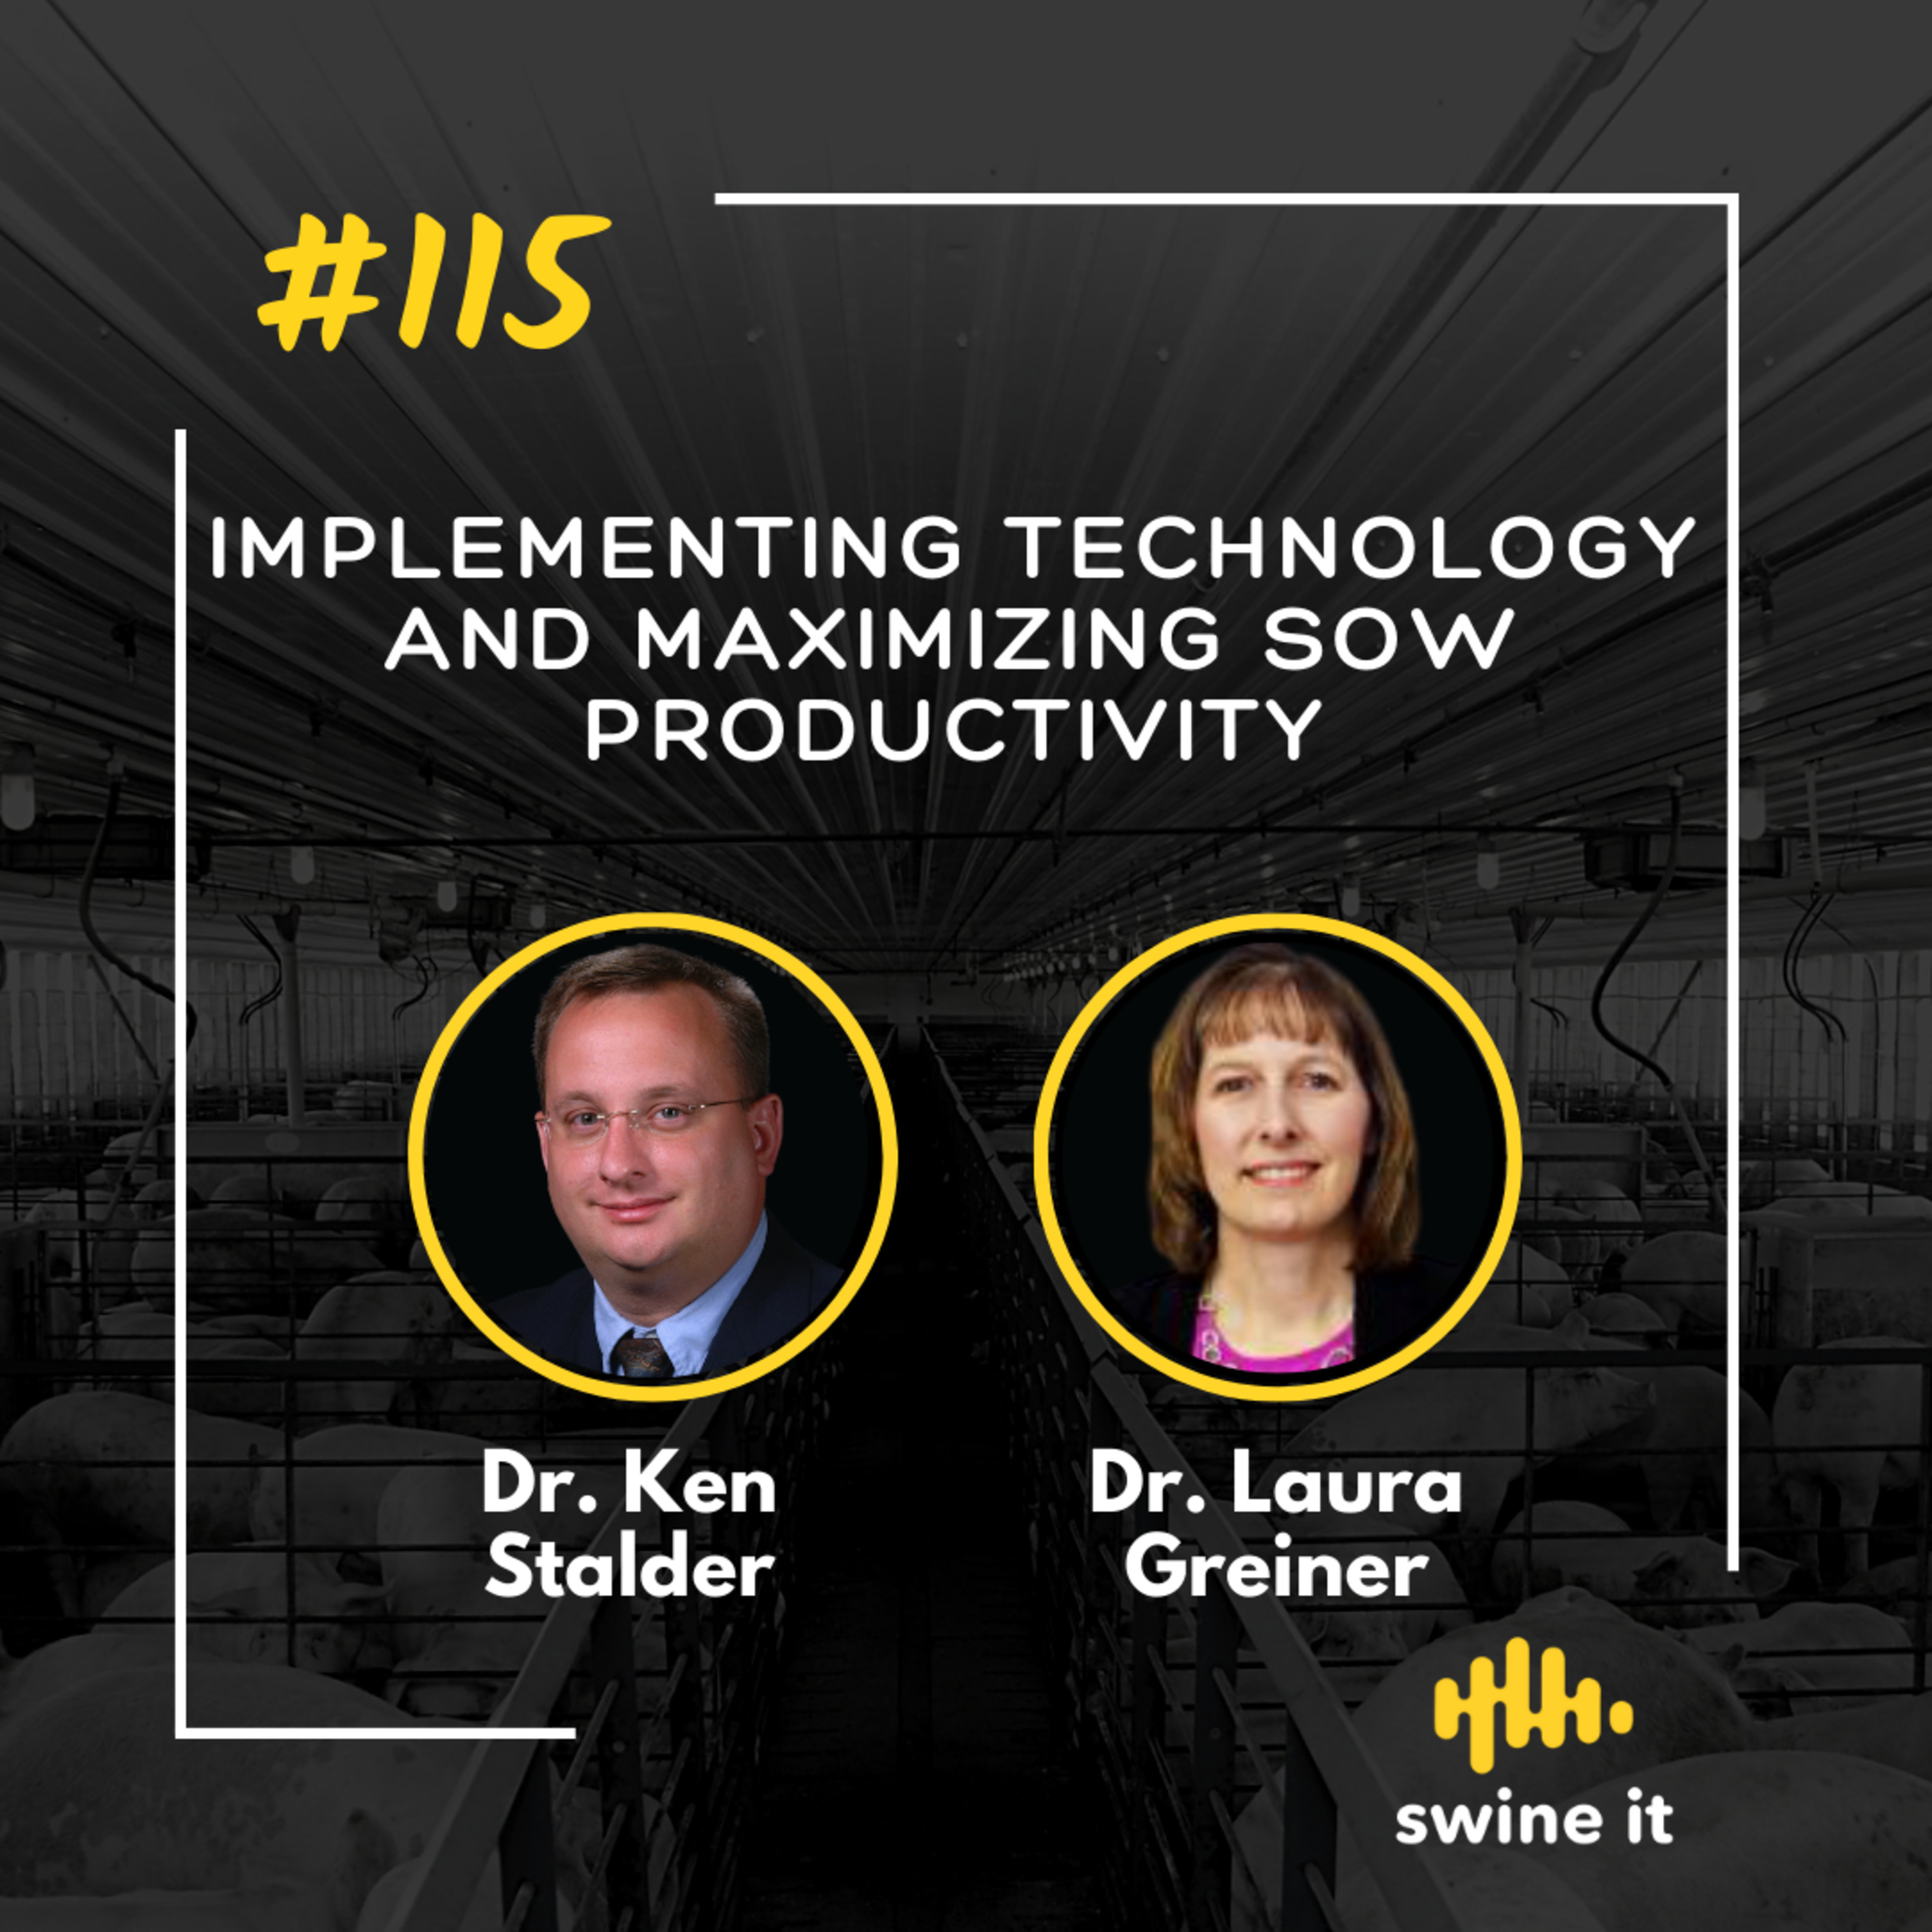 Implementing technology and maximizing sow productivity - Dr. Ken Stalder